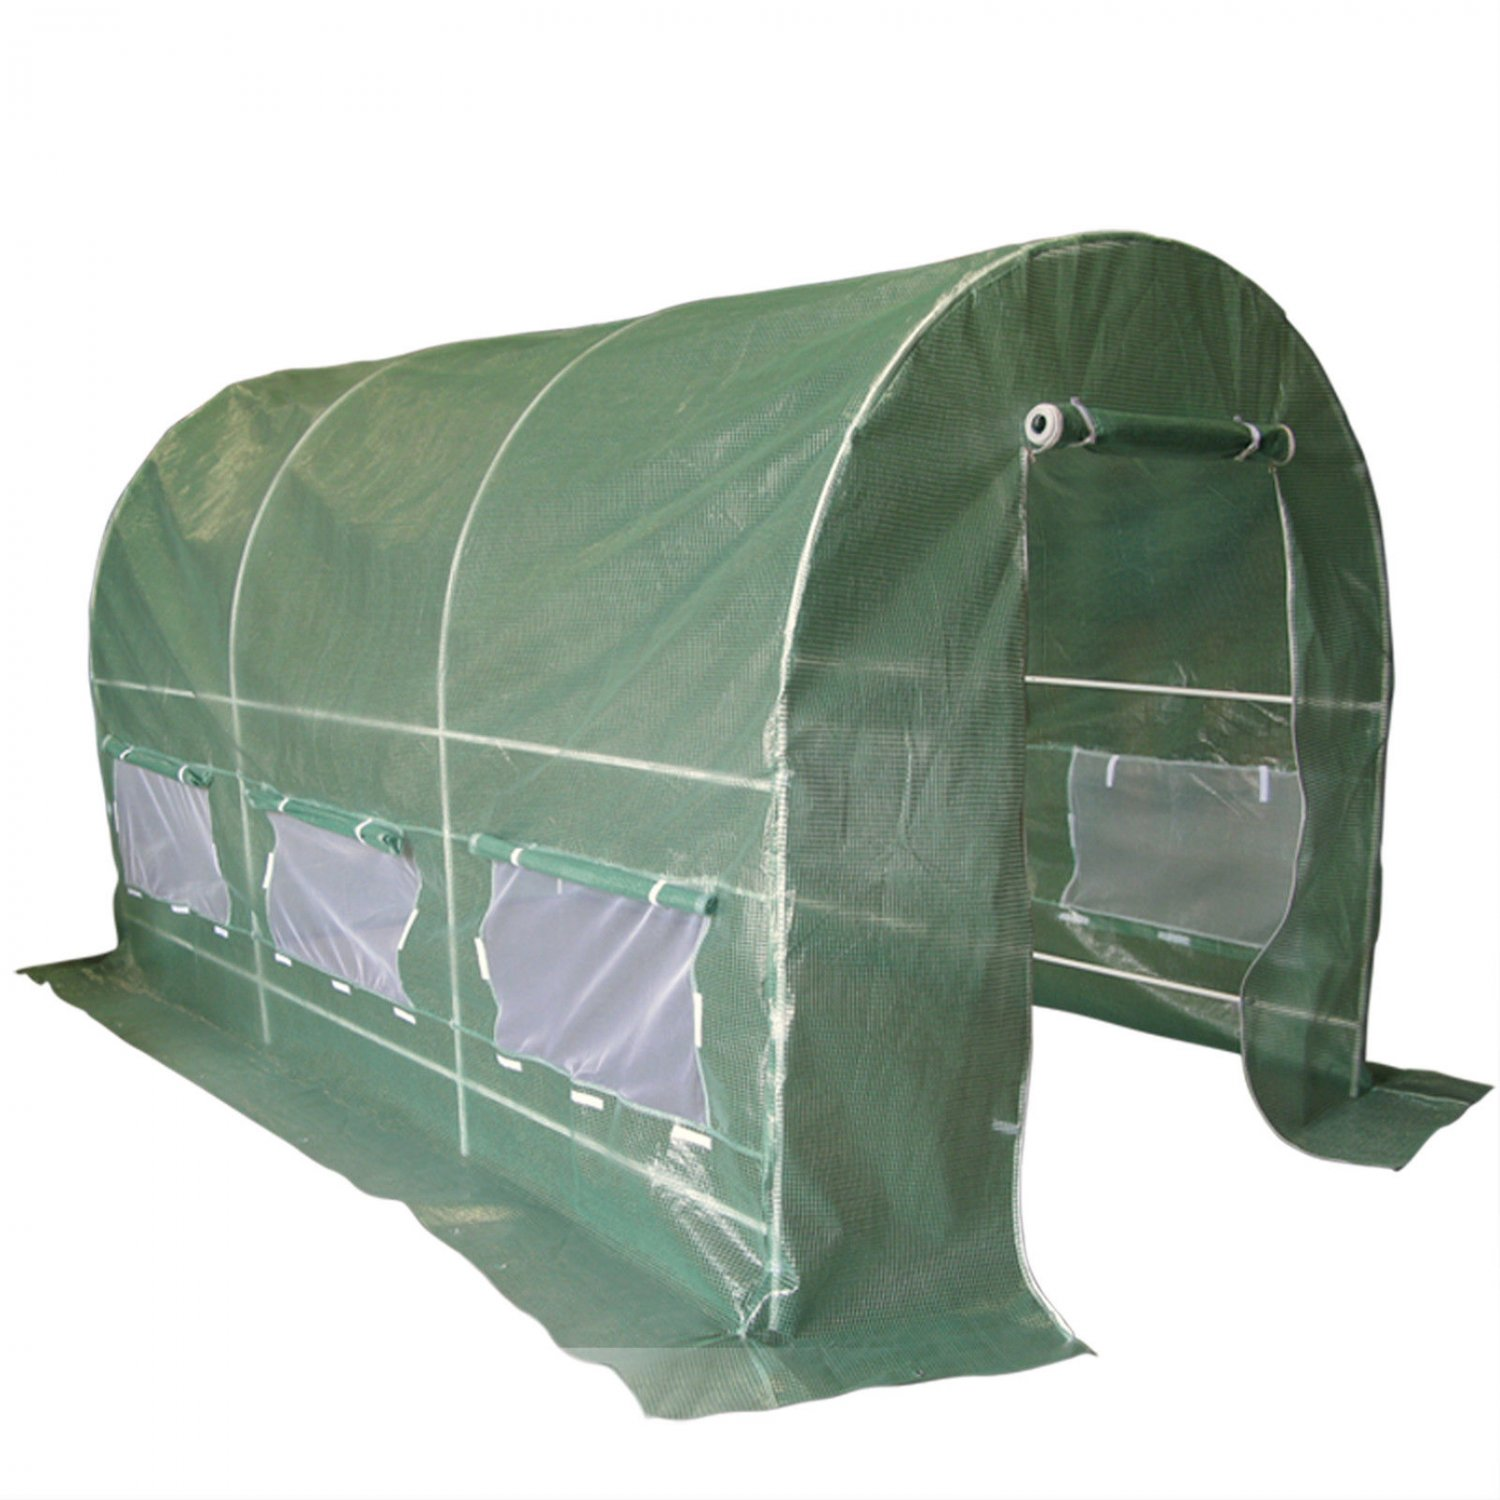 New Greenhouse 12' X 7' X 7' Large Outdoor Green House Plant Gardening Garden